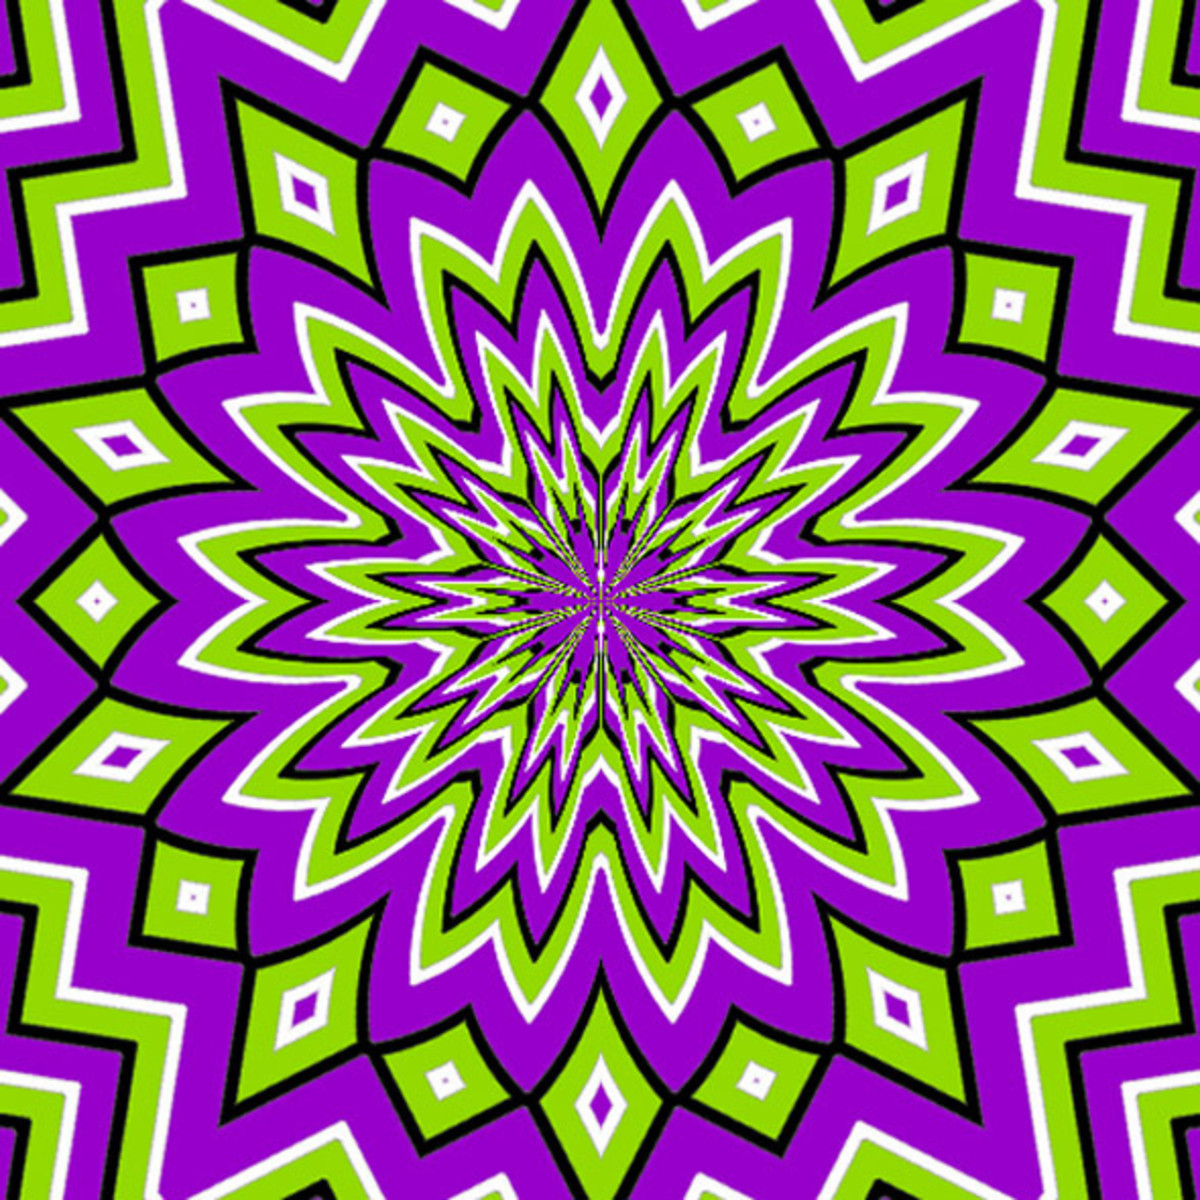 This optical illusion seems to pulsate towards the centre and back outwards again